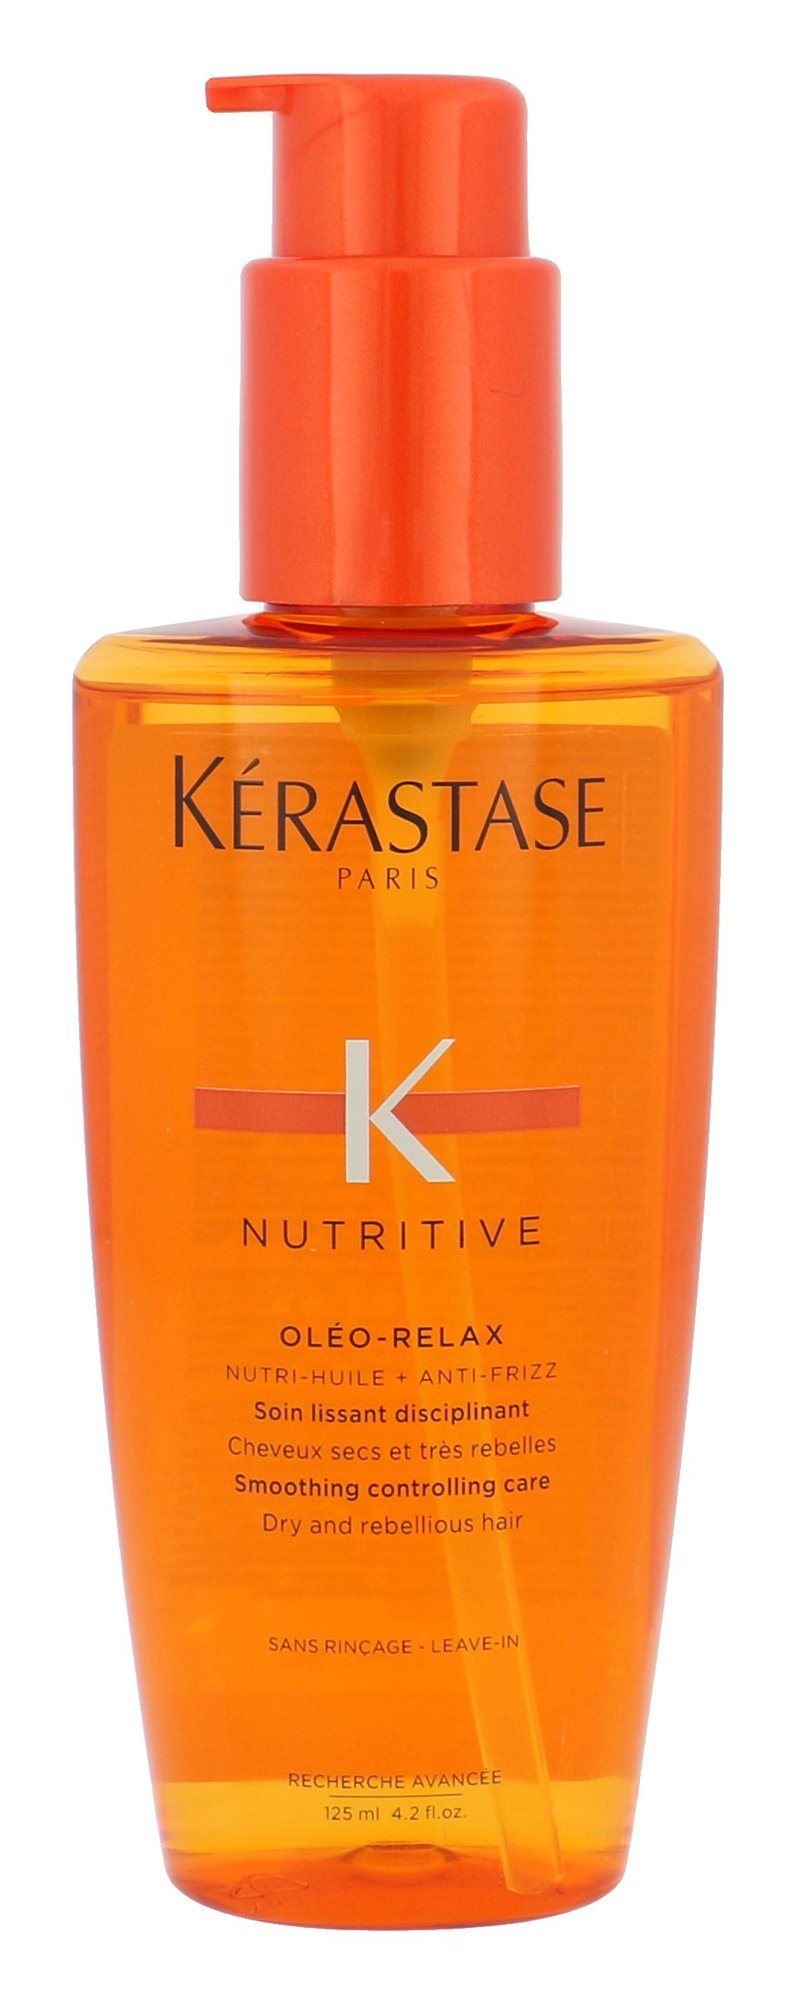 Kérastase Nutritive Cosmetic 125ml